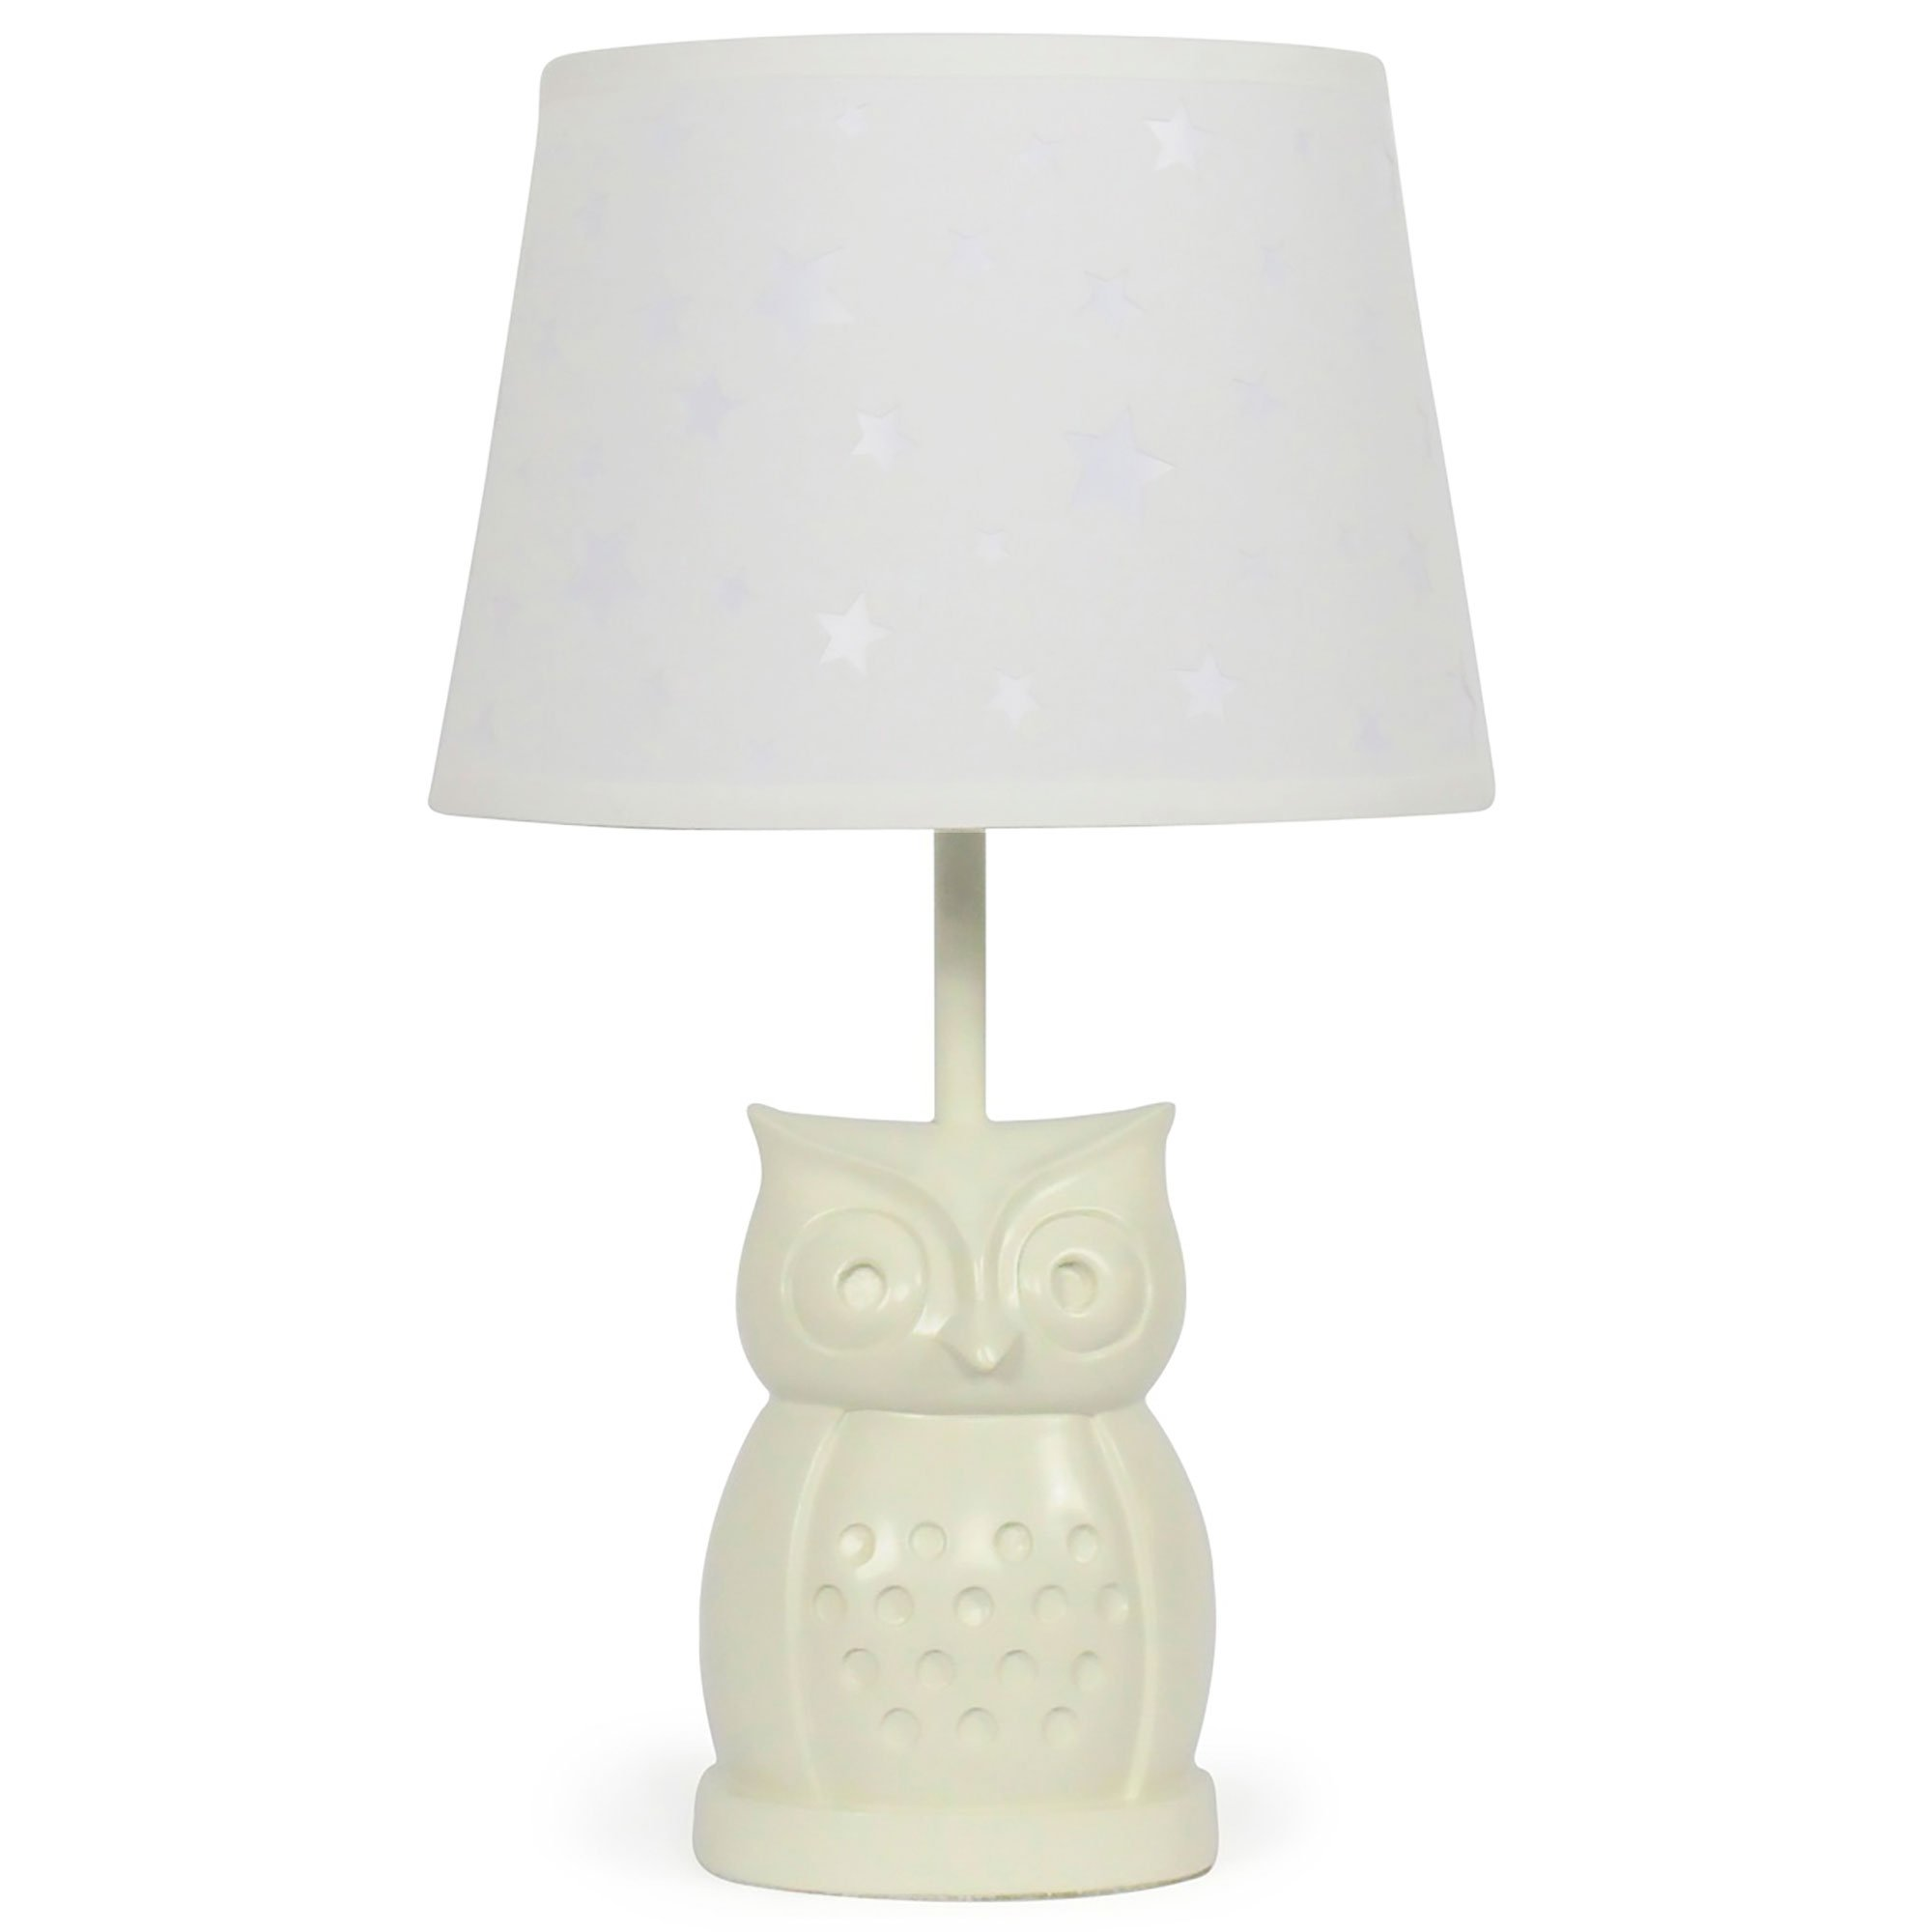 White Star Nursery Lamp Shade with White Owl Base, CFL Bulb Included